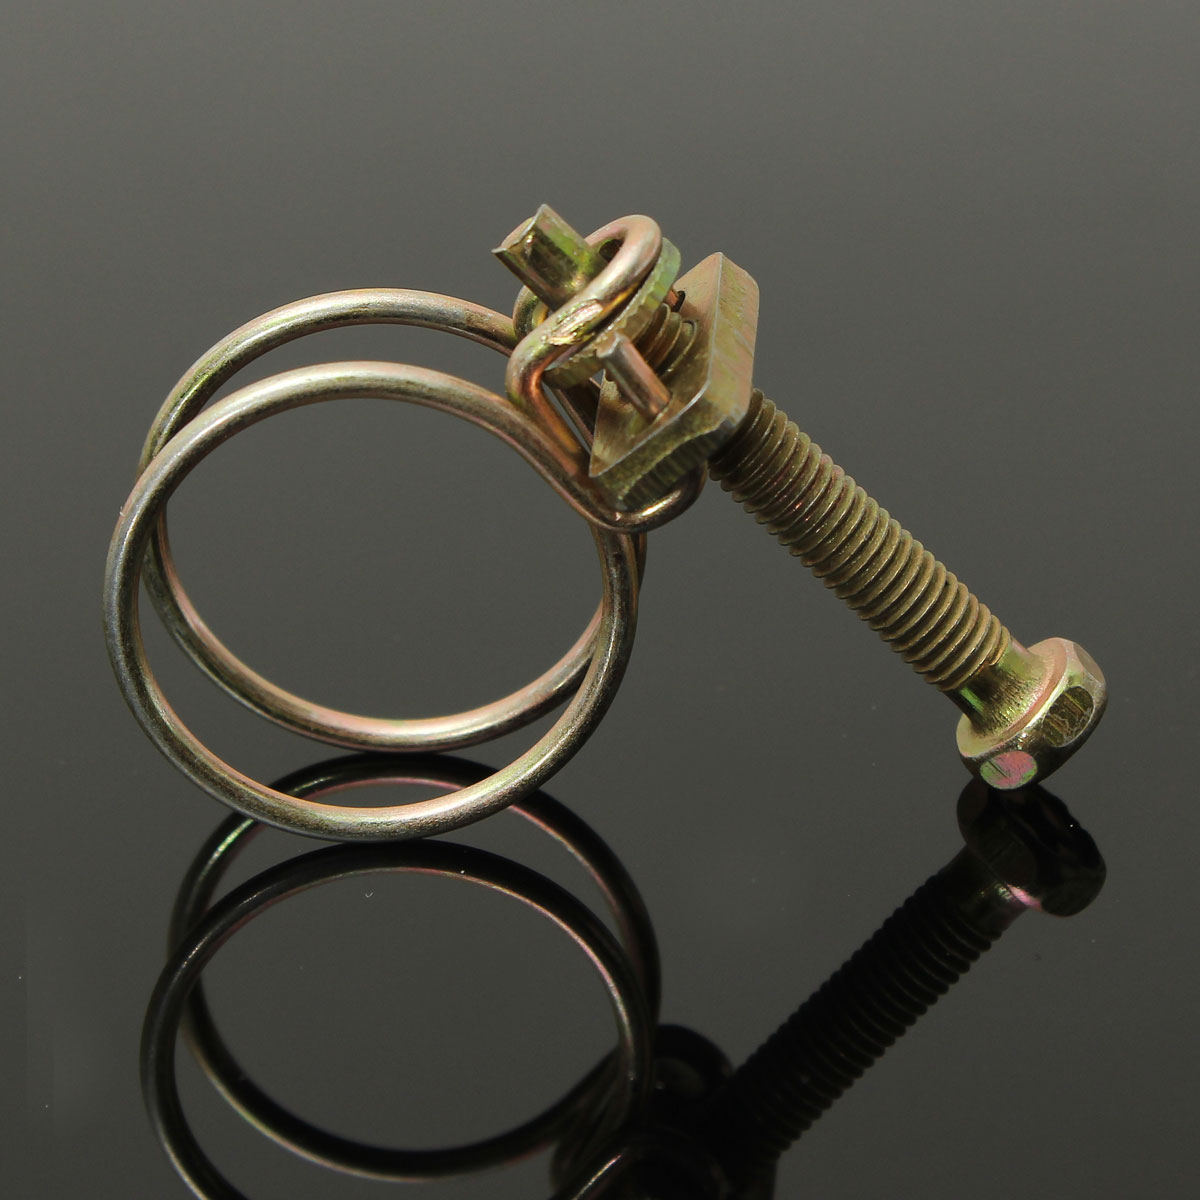 New double wire hose clamp pipe clip screw bolt tight